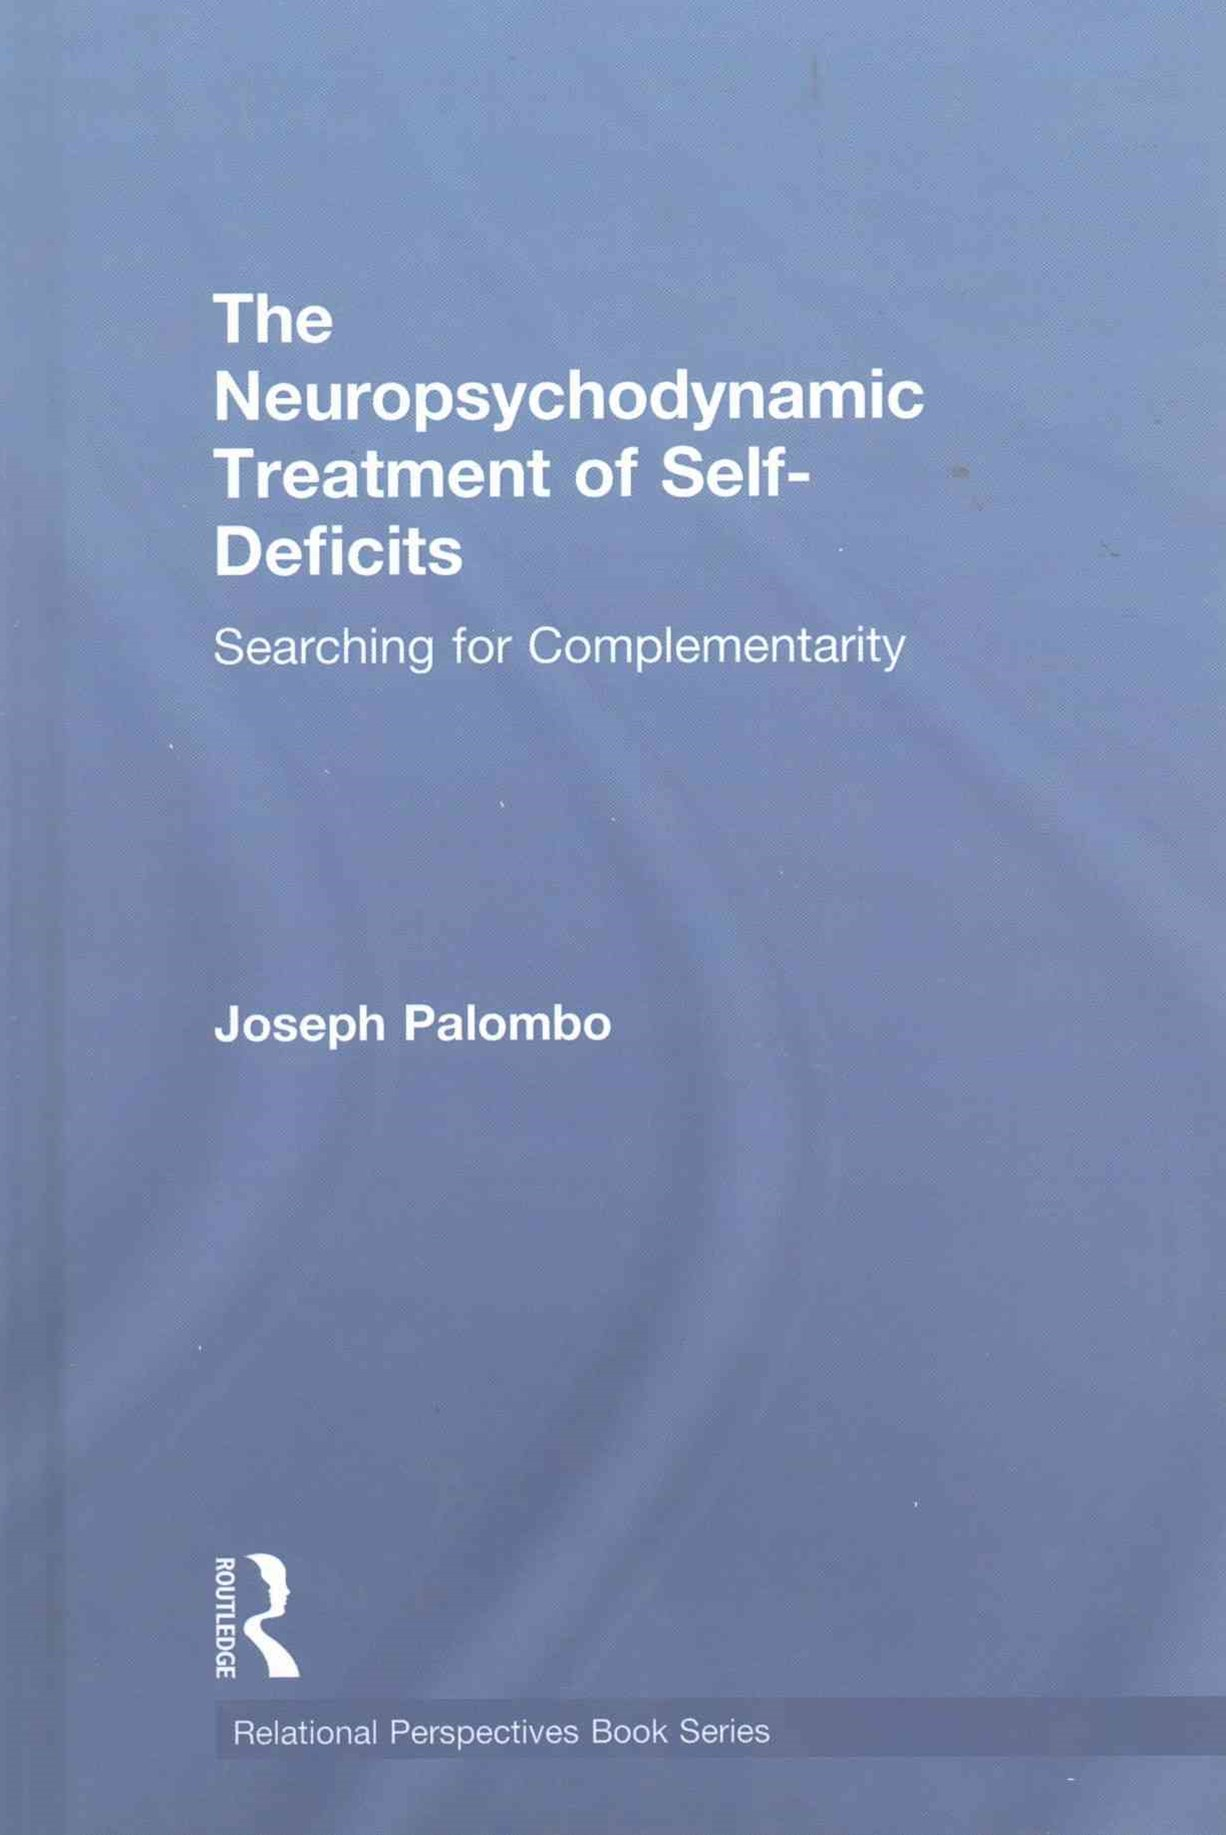 Neuropsychodynamic Treatment of Self-Deficits